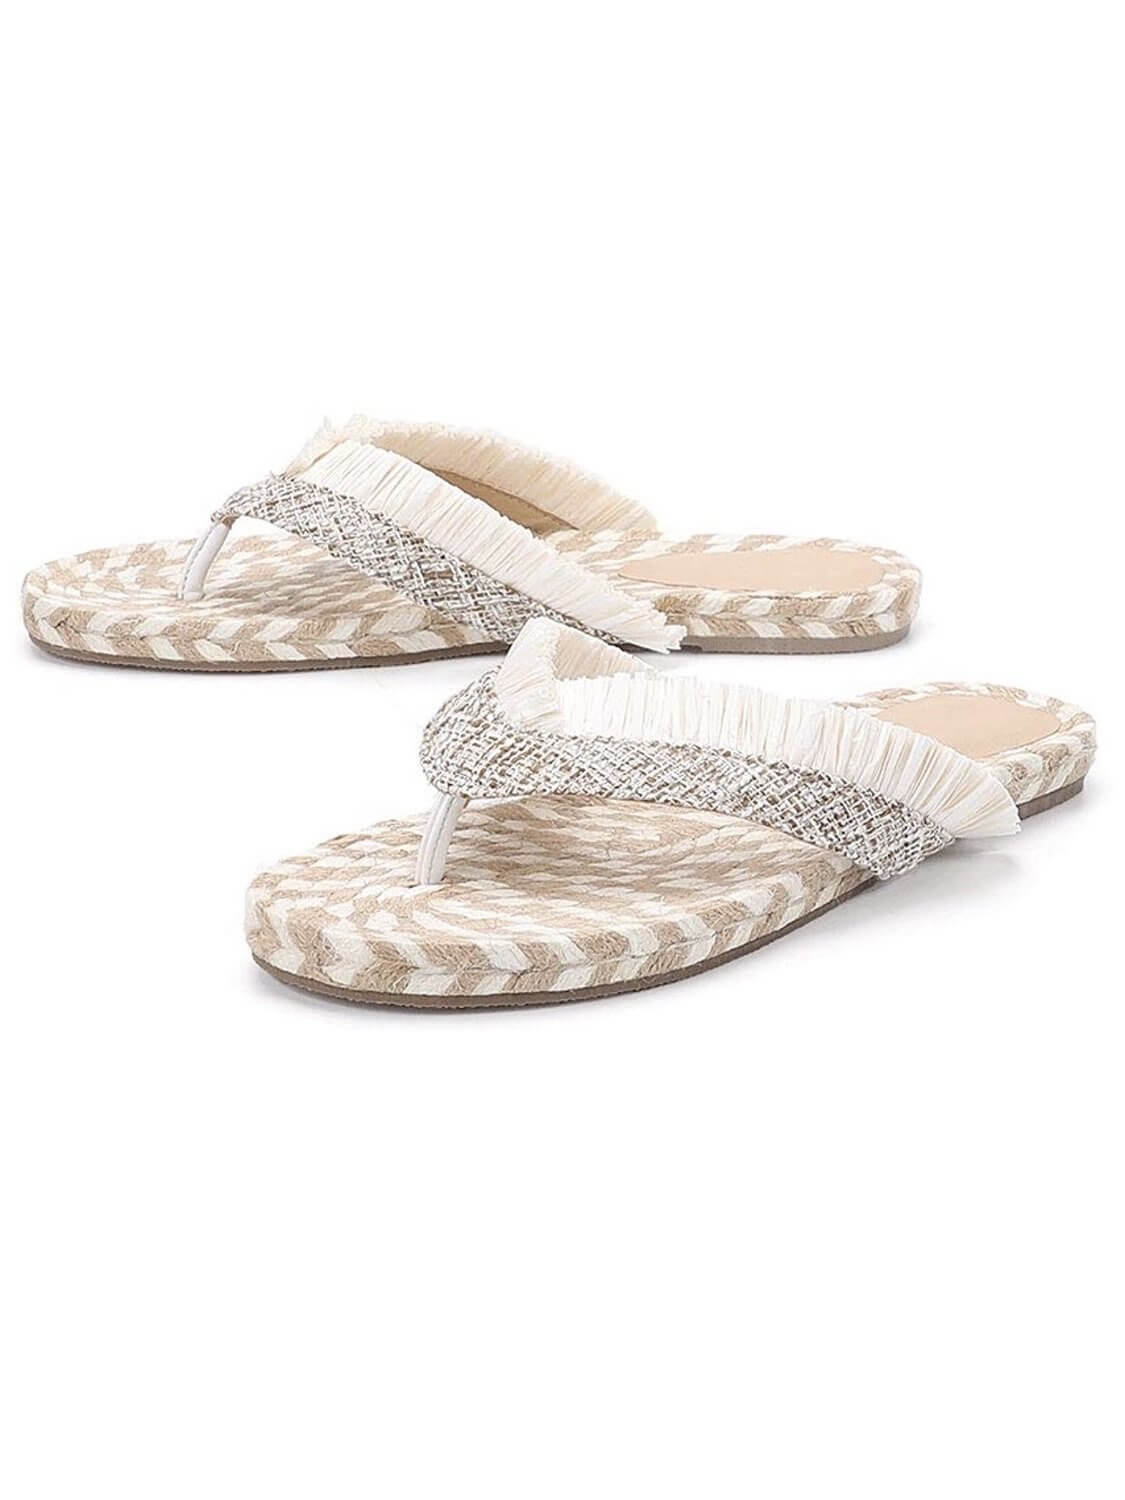 Canvas slide boho and casual style, espadrilles type and with fringed details.